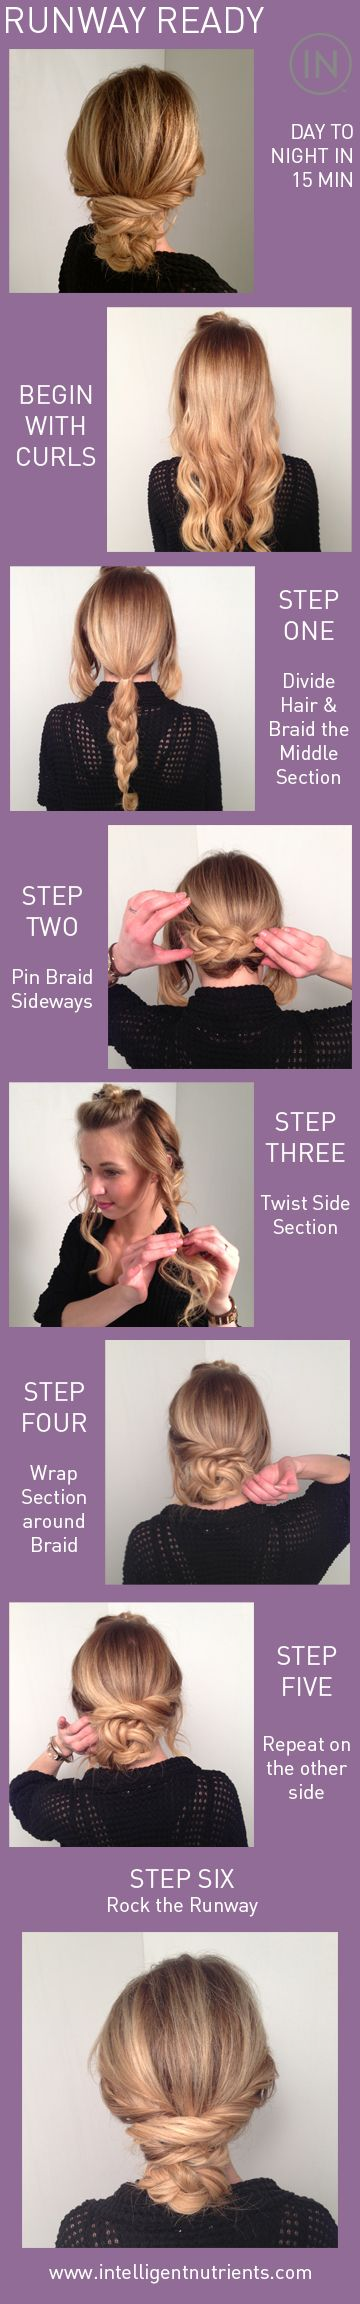 Super easy runway look for 2nd day hair. Ready in 15 min! **This looks SOOO easy bc my arms get tired trying to do side braids!!